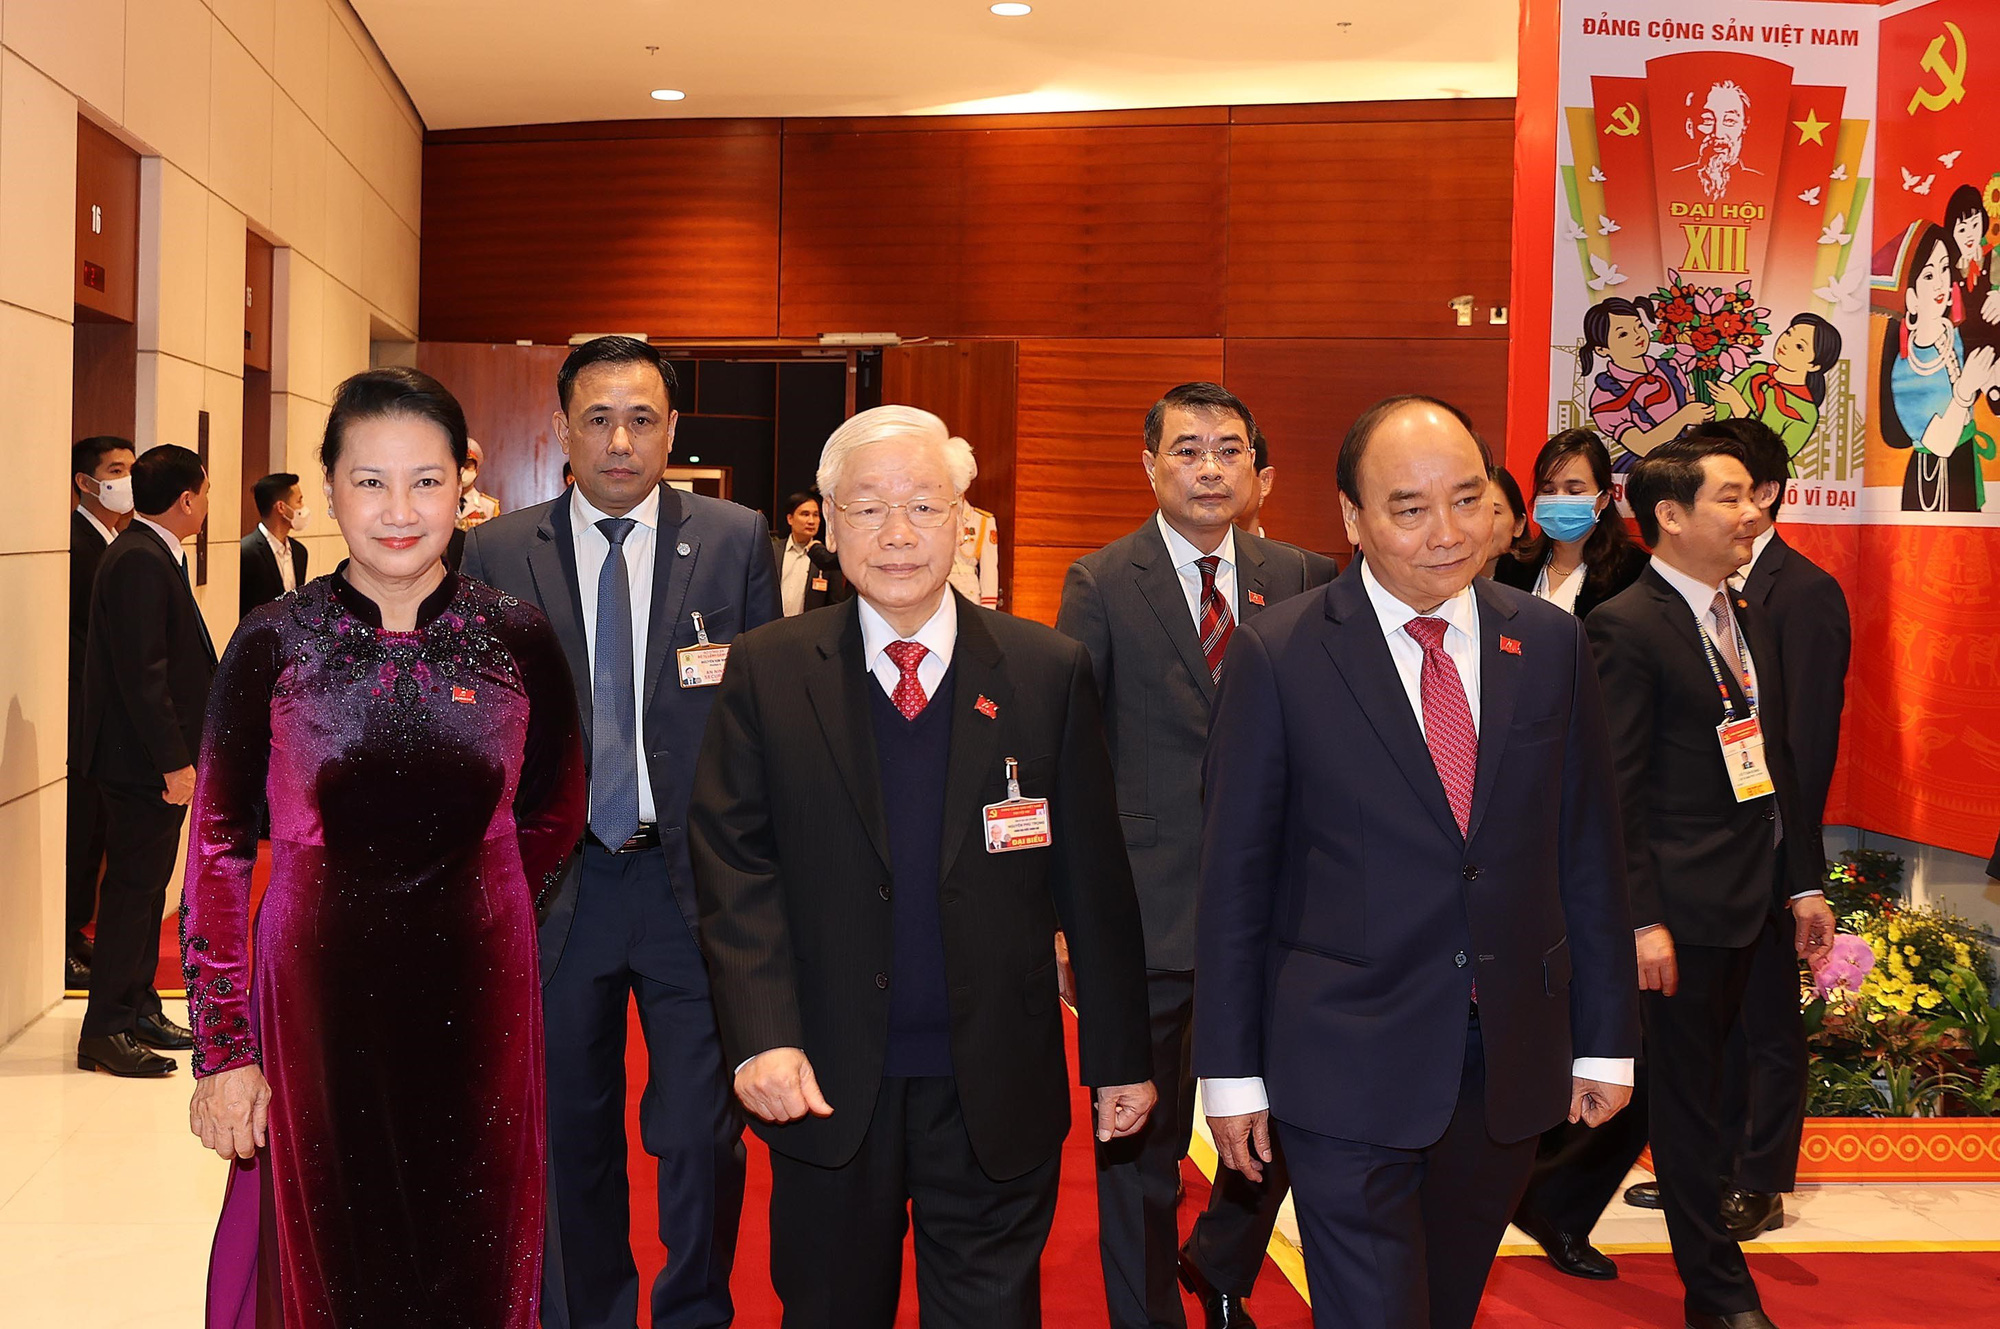 From left: National Assembly Chairwoman Nguyen Thi Kim Ngan, Party General Secretary and State President Nguyen Phu Trong, and Prime Minister Nguyen Xuan Phuc arrive at the preparatory session in Hanoi, January 25, 2021. Photo: Vietnam News Agency